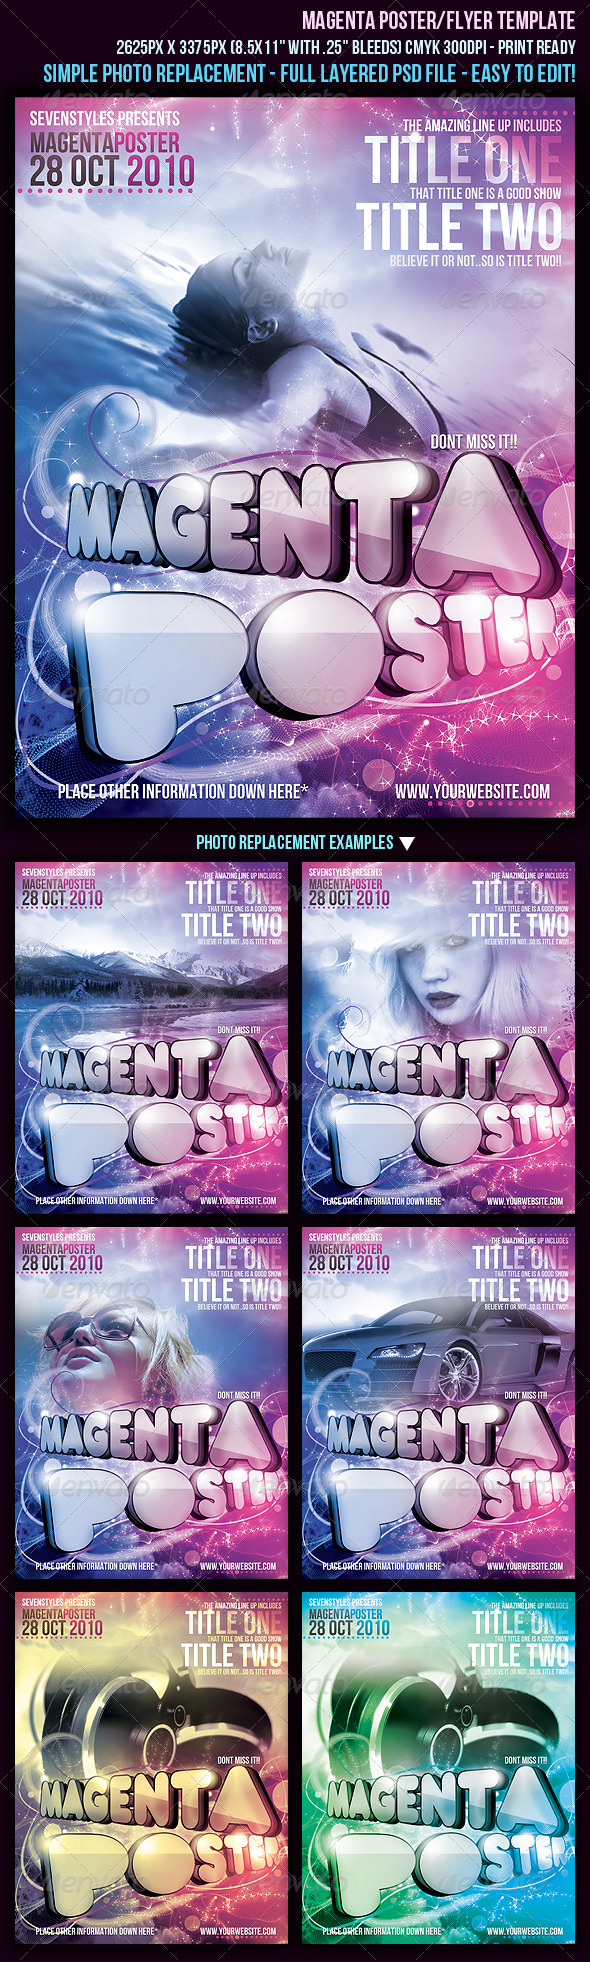 GraphicRiver Magenta Poster Flyer Template 131673